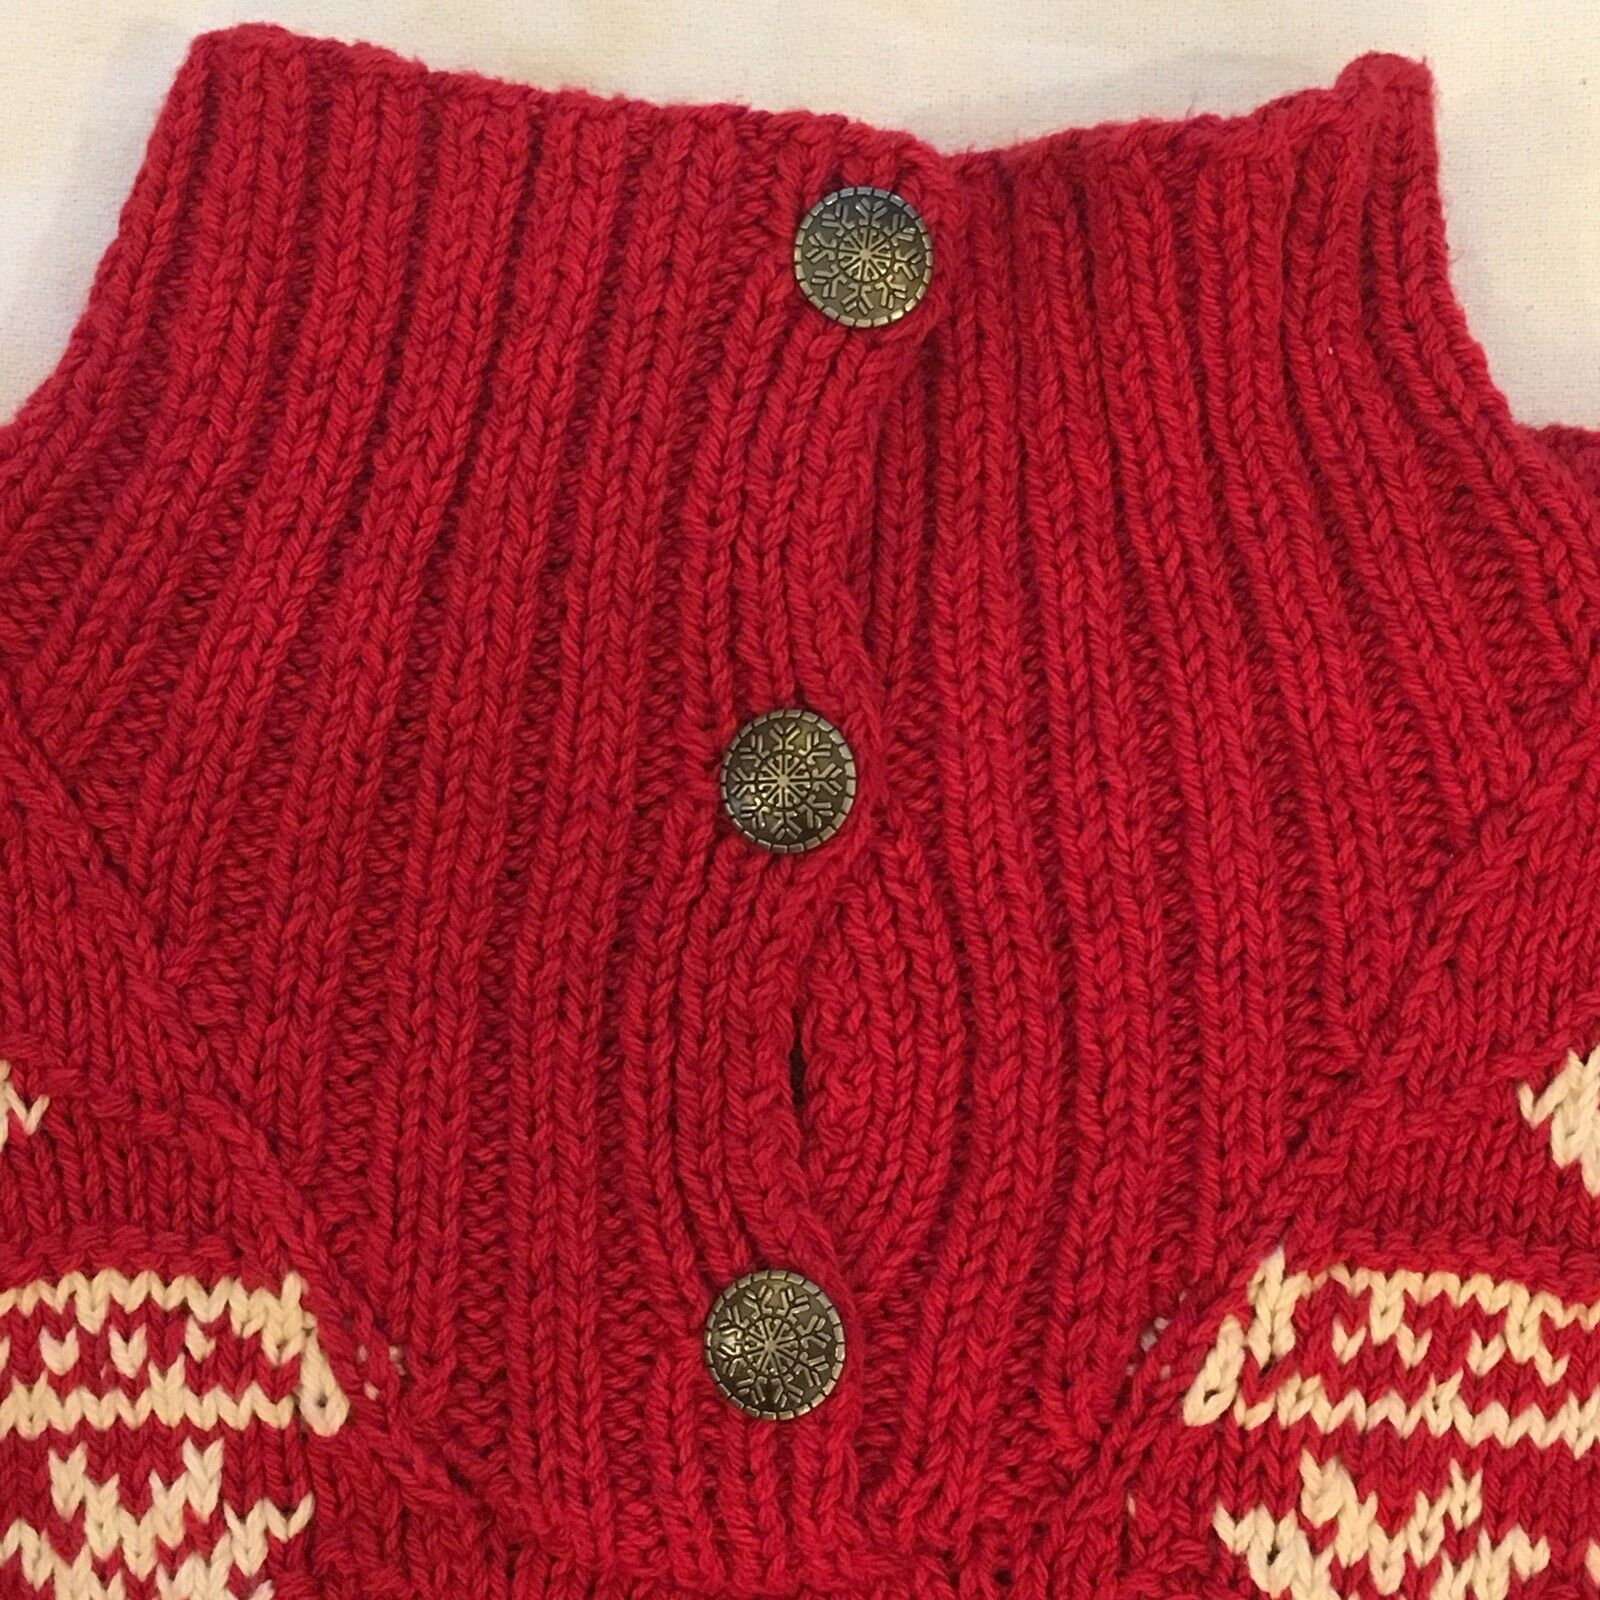 NWTLAUREN RALPH LAUREN Red Knitted Sweater Size Size Size 1X fae9c9